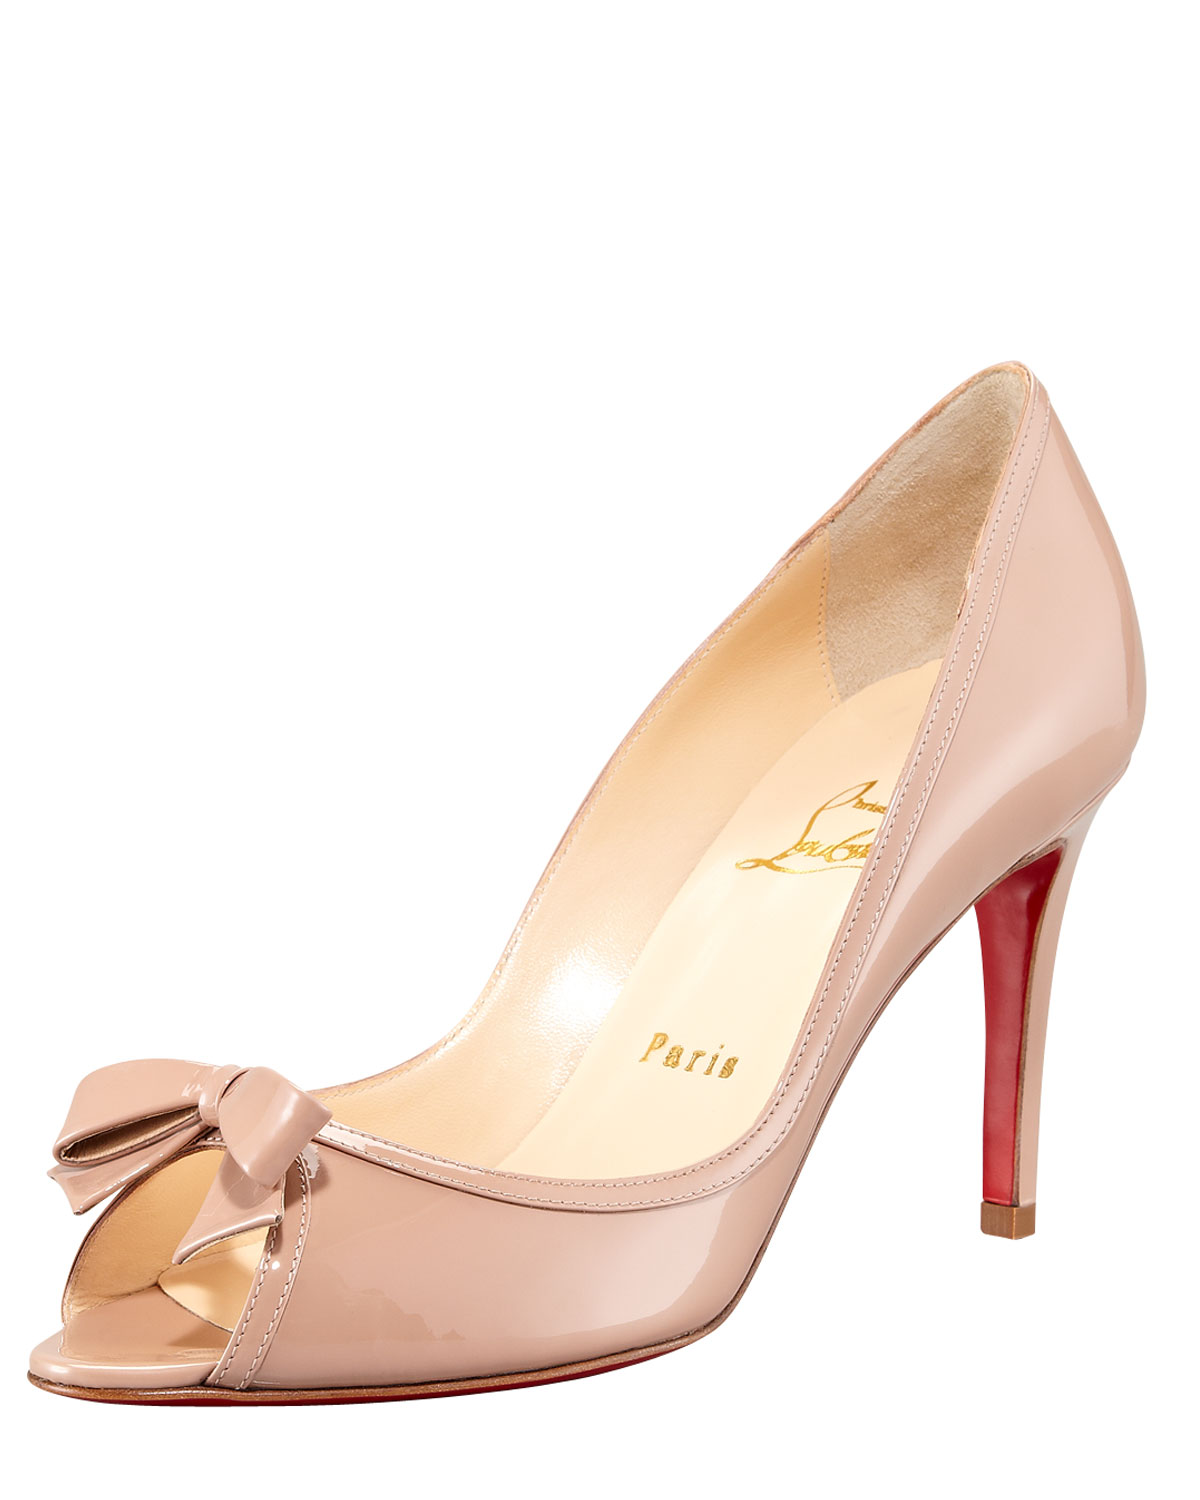 mens spiked shoes - christian louboutin patent leather bow pumps, purple louboutins shoes